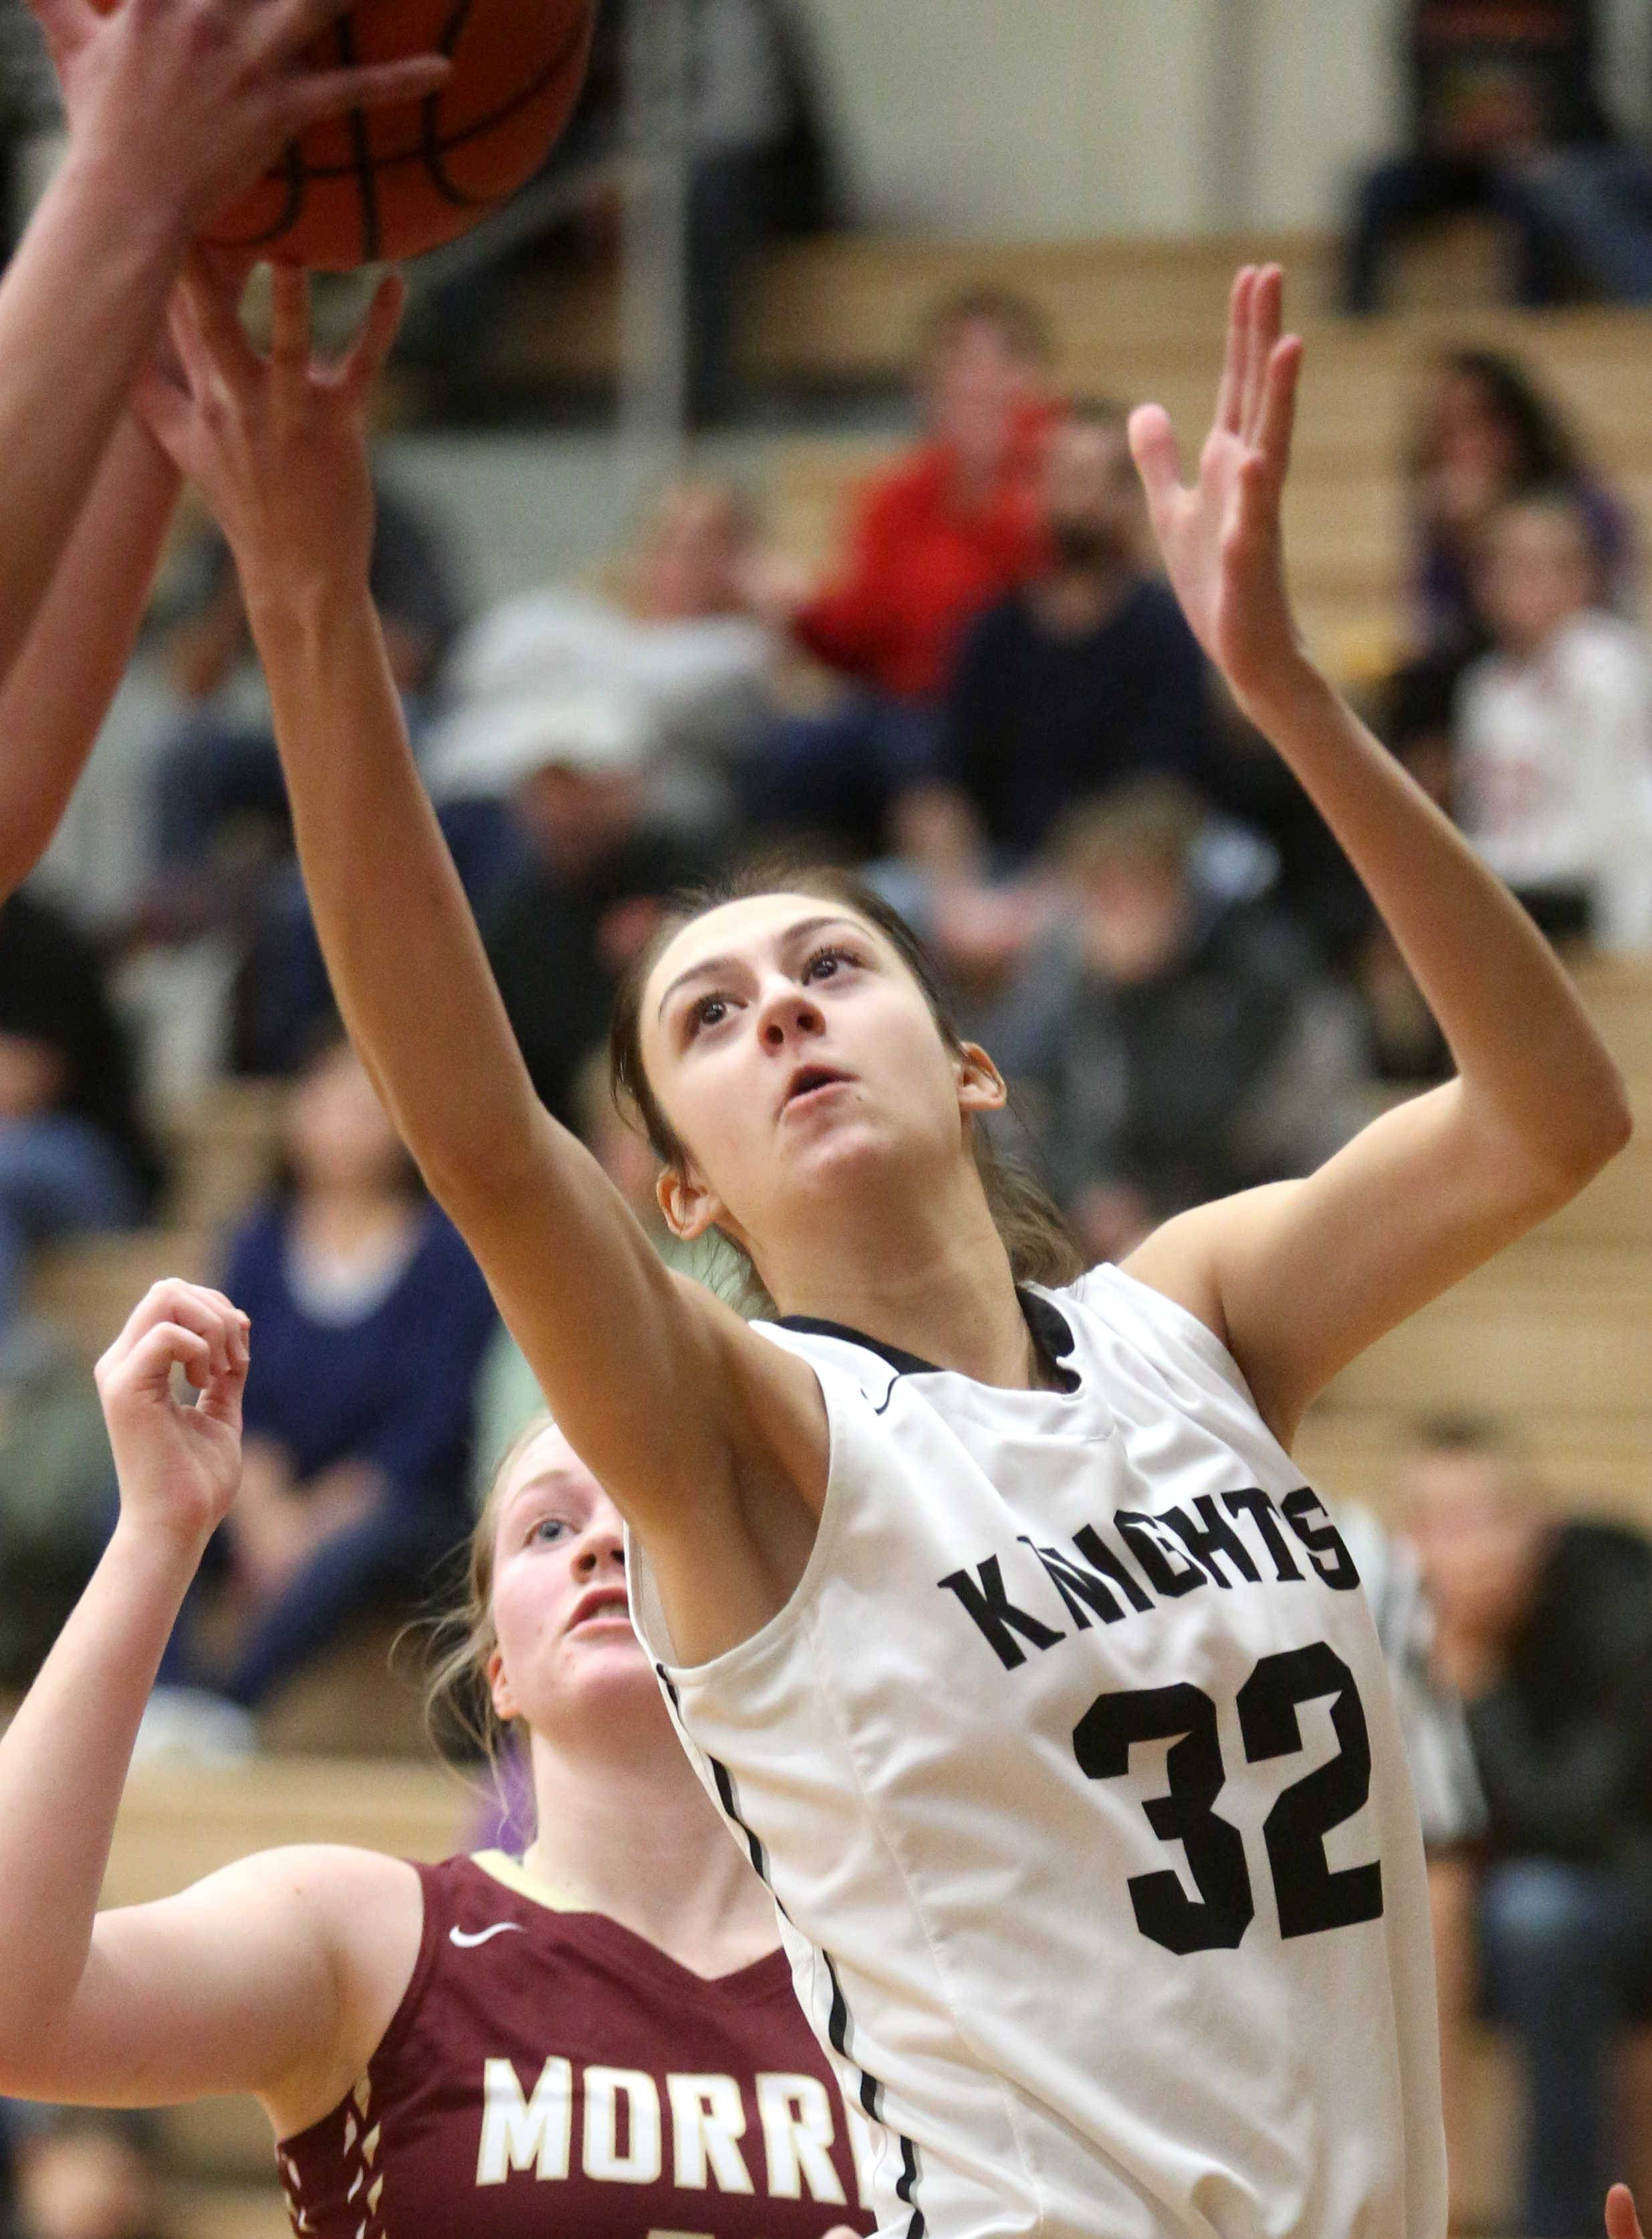 Kaneland's Addie Ringel looks for a rebound against Morris during varsity basketball action at Kaneland Tuesday night.